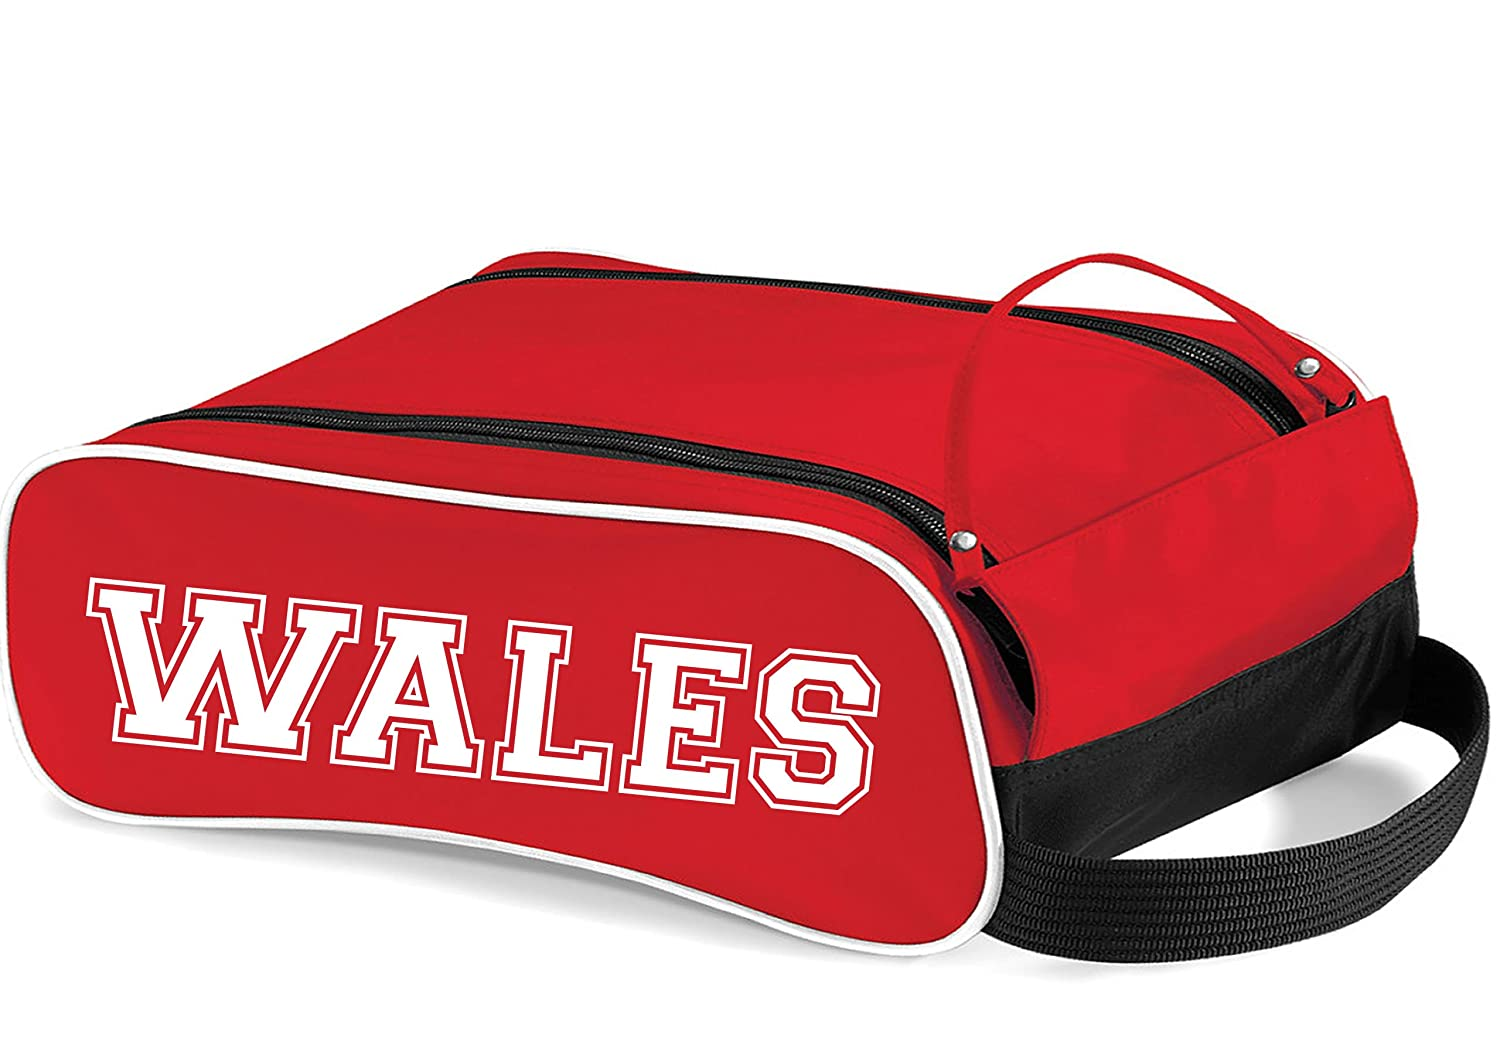 e709d9208984 Wales Boot Bag Ideal Gift Shoe Bag for Football